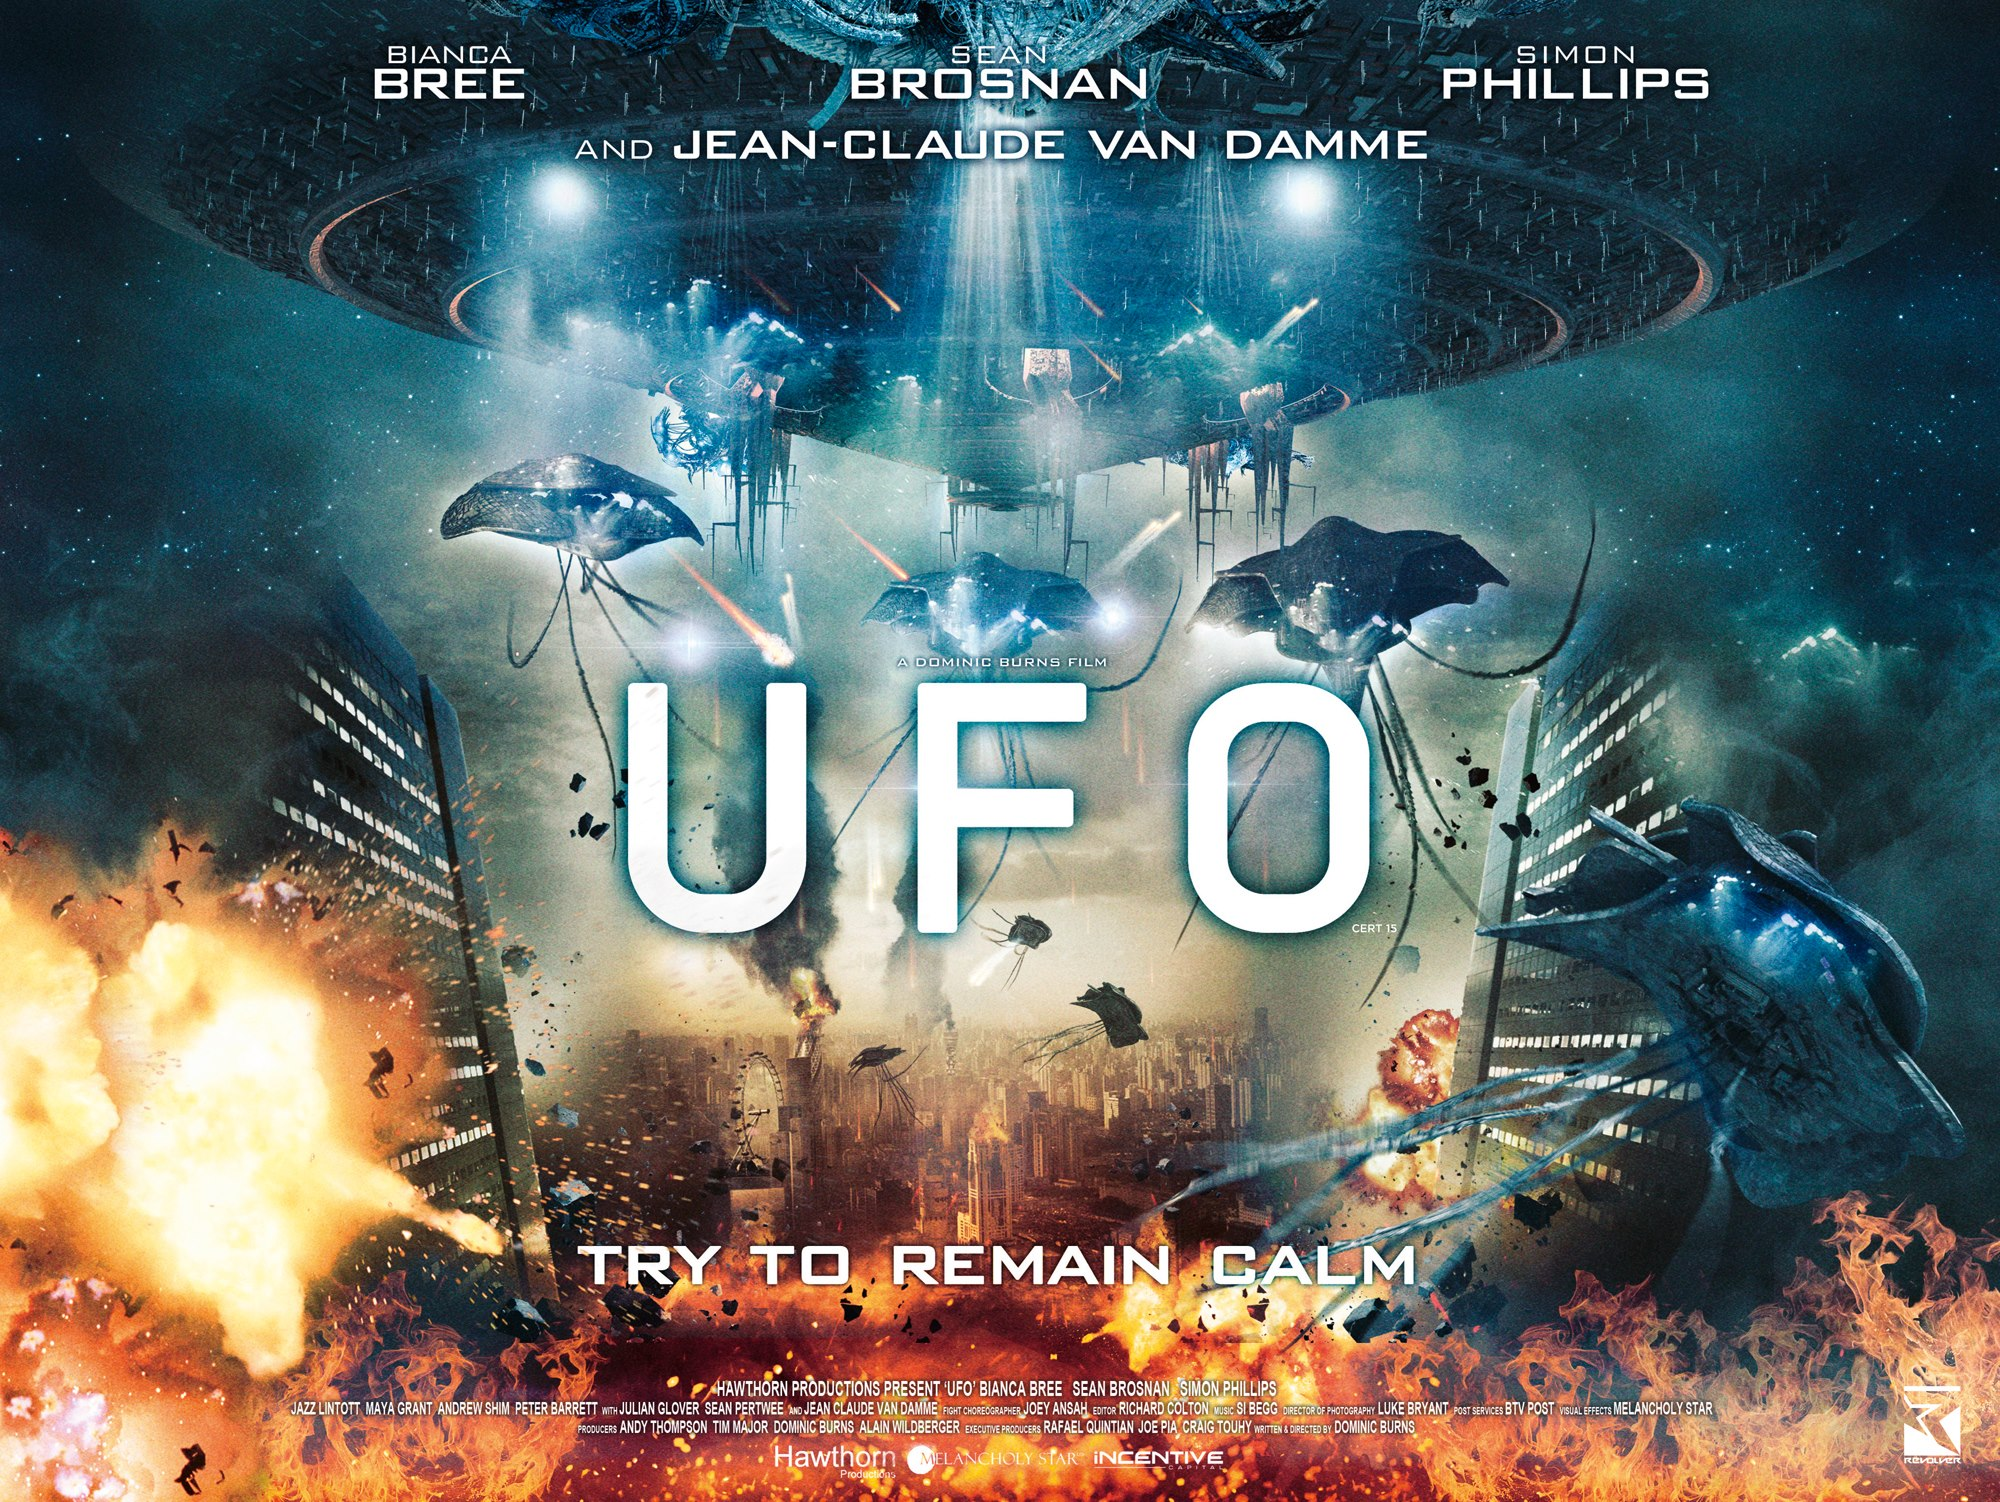 Ufo movie - poszter + trailer